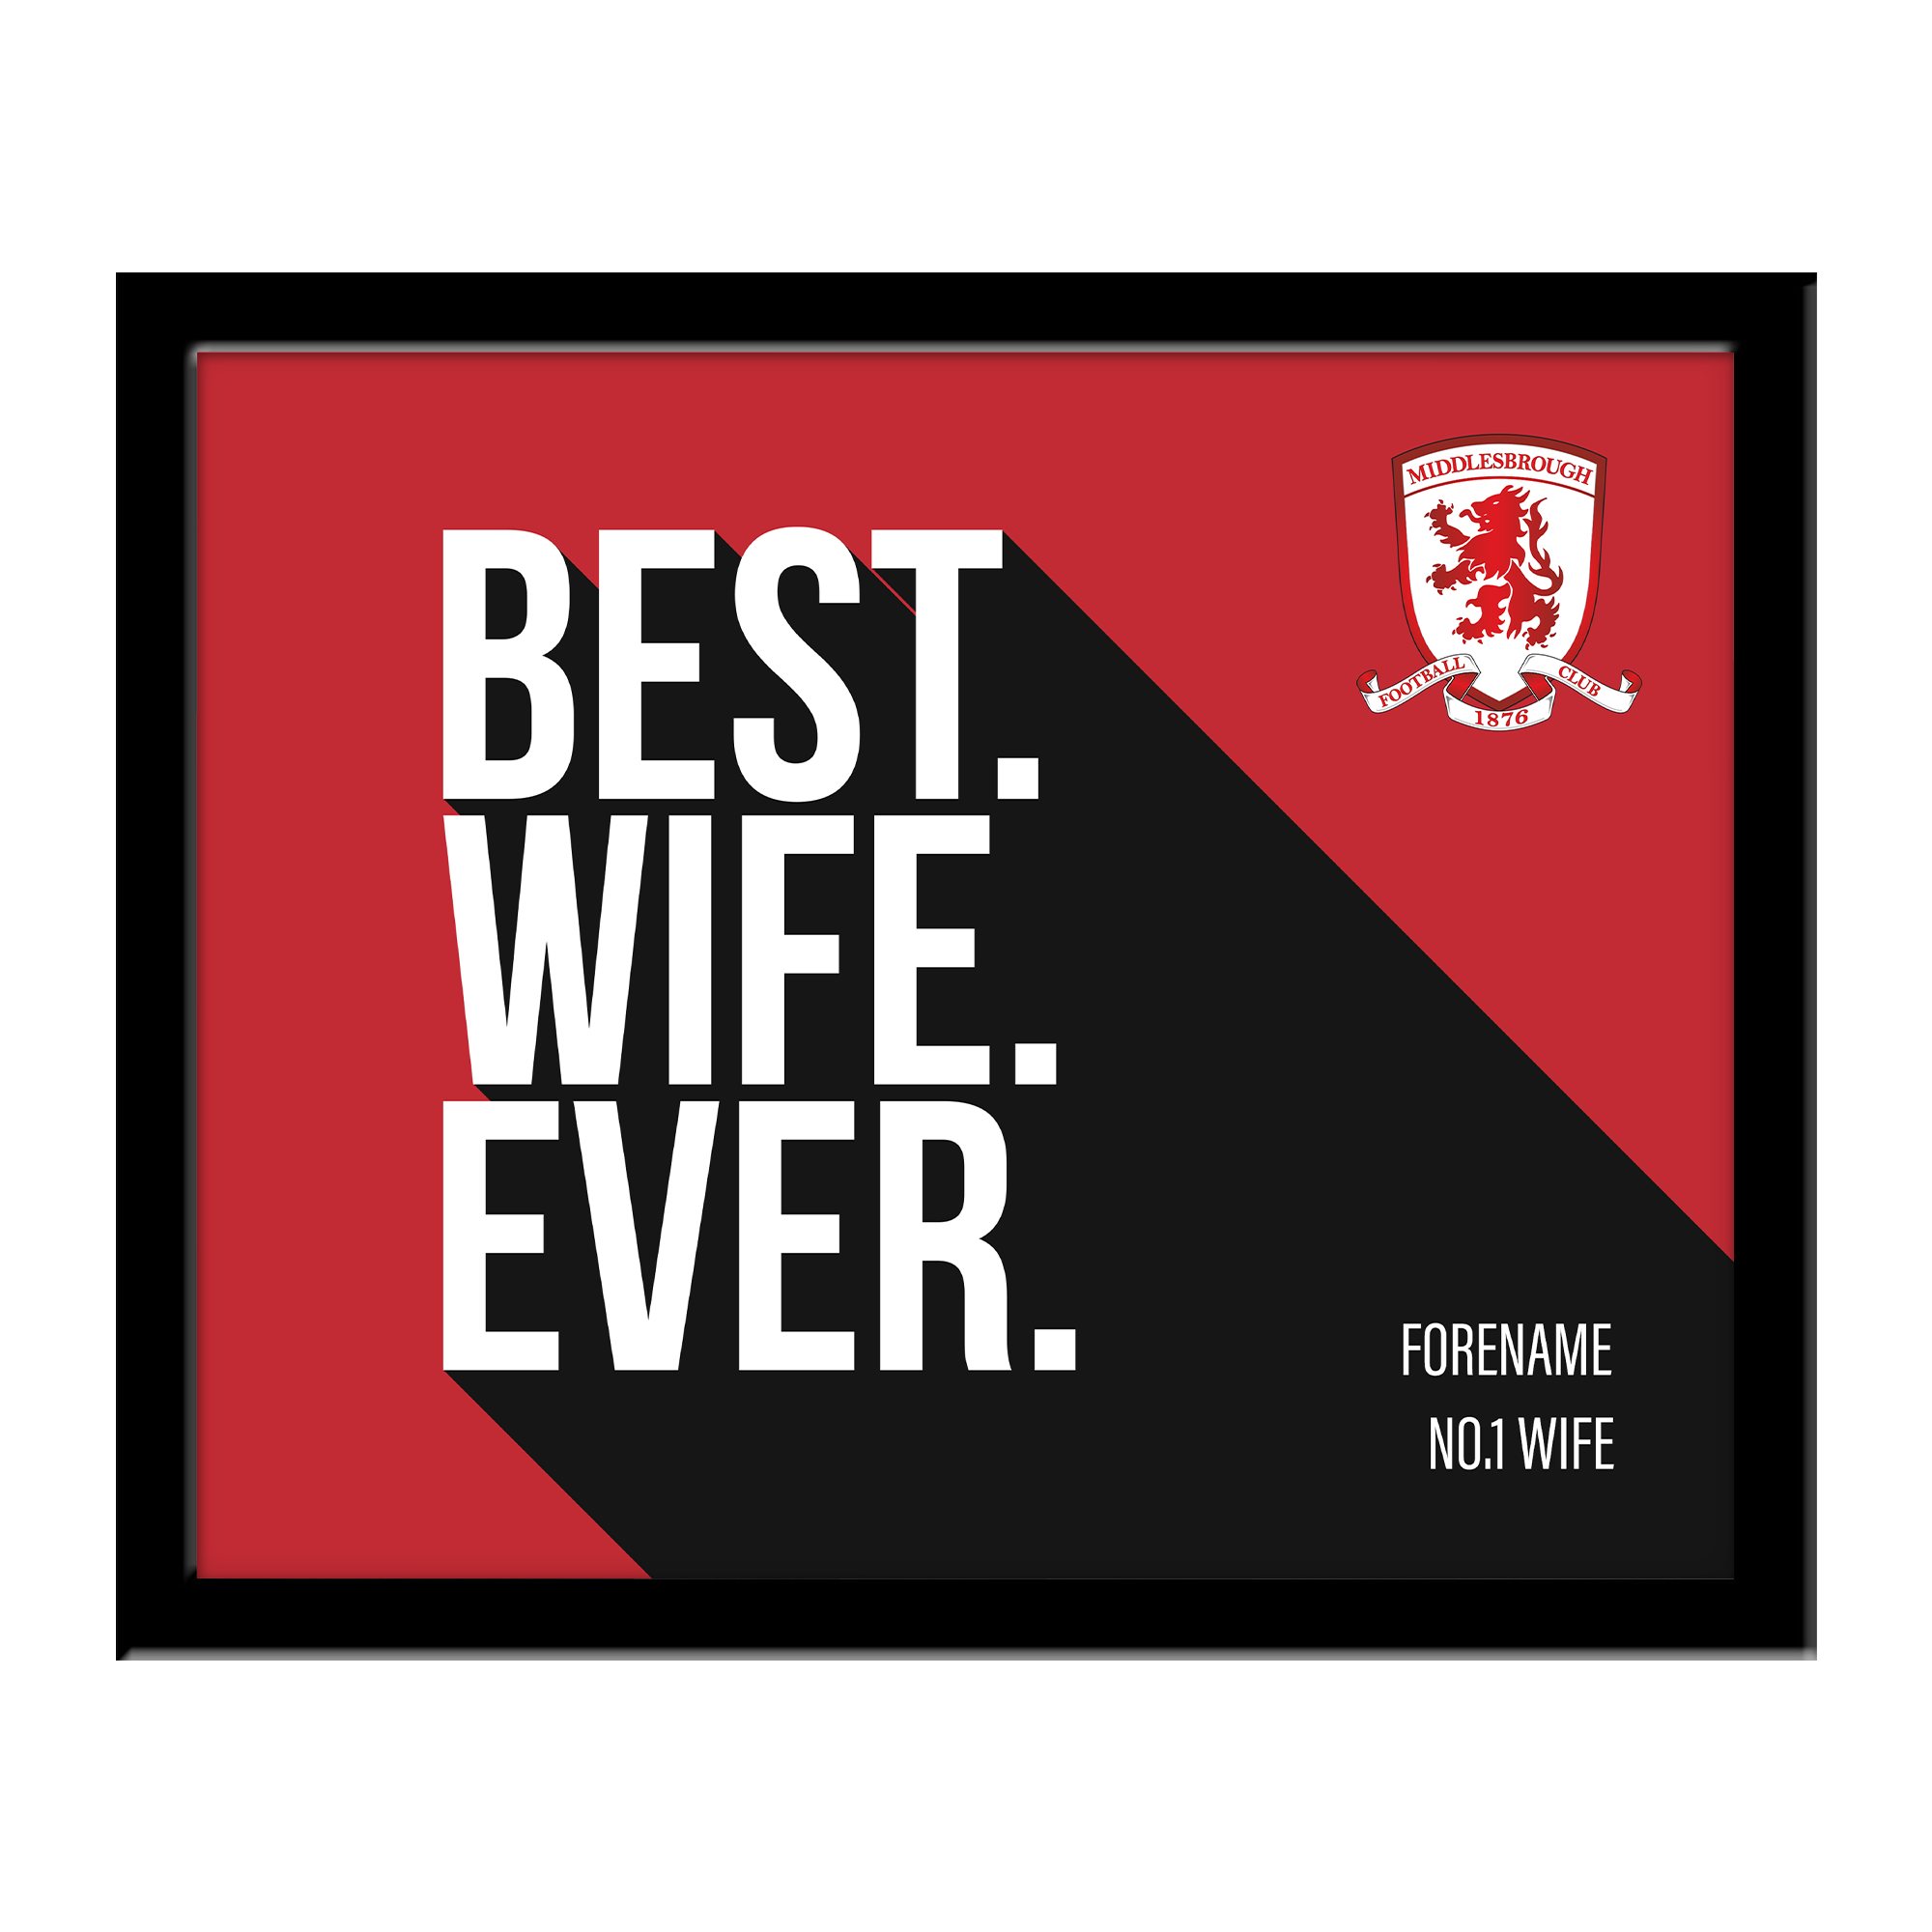 Middlesbrough Best Wife Ever 10 x 8 Photo Framed